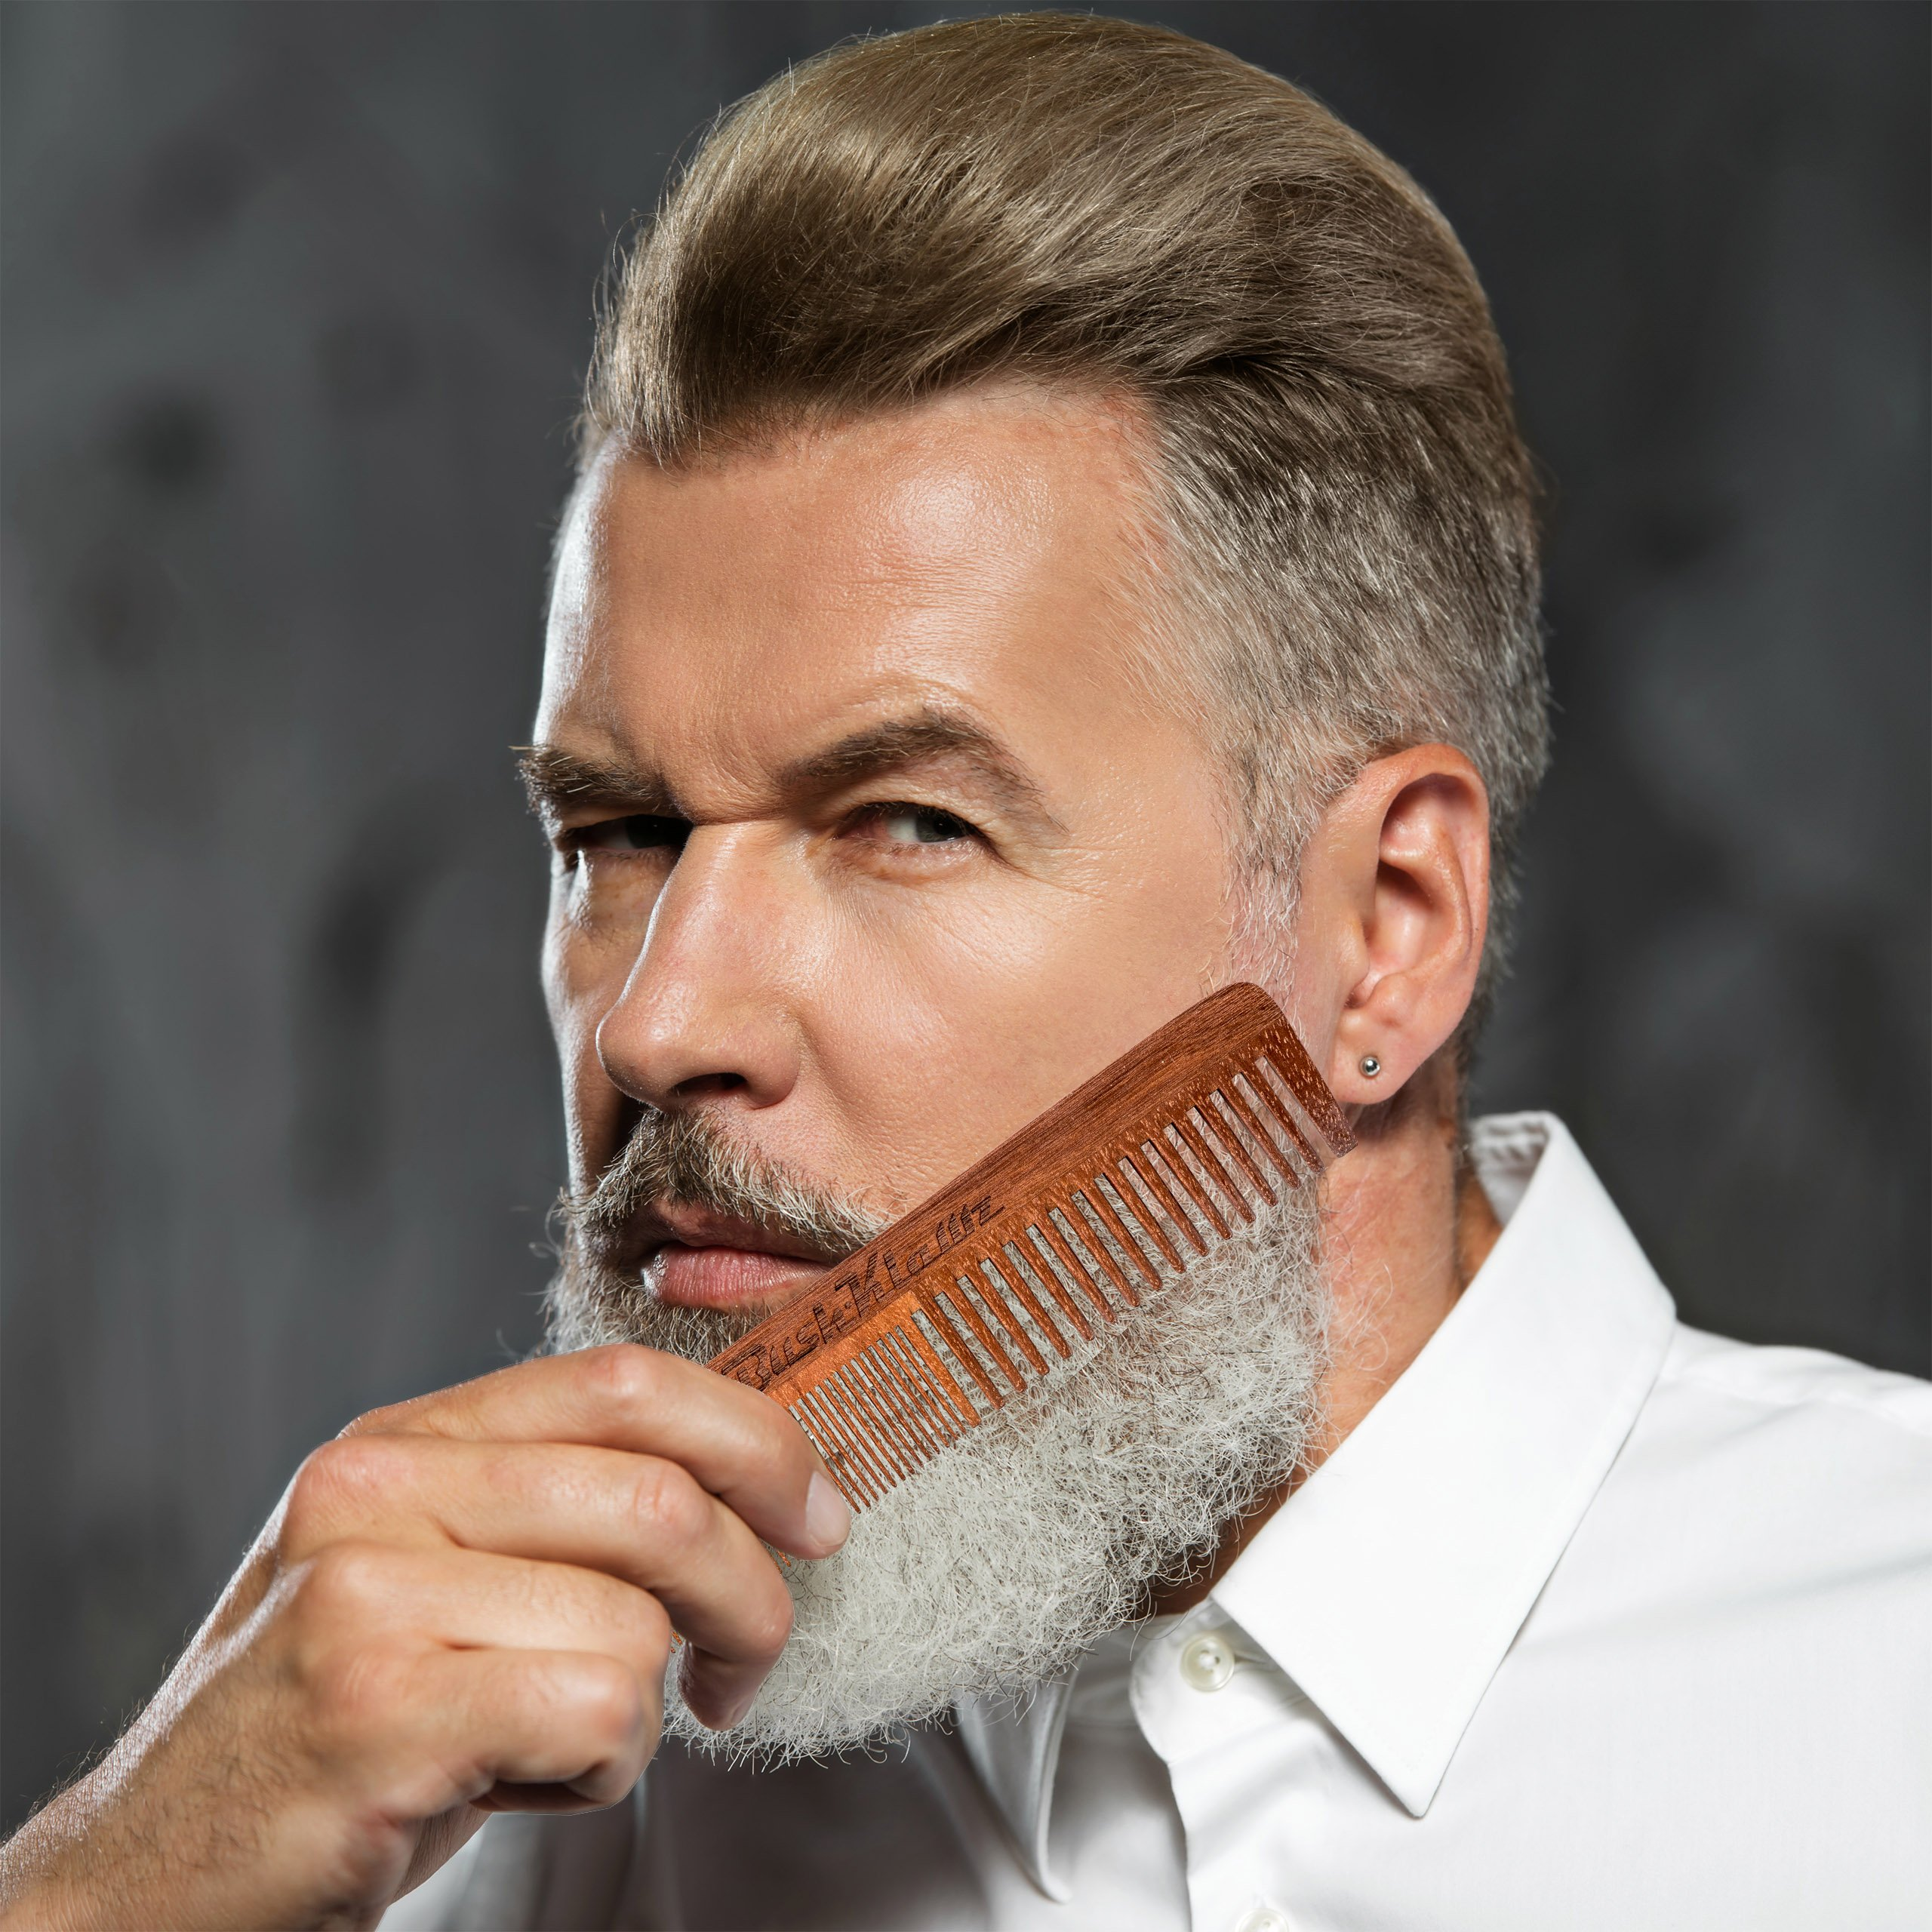 2Klawz Hair Comb for Men - Hair and Beard Comb with Wide and Fine Teeth Full Size 7'' Combination Comb - Best Man Comb Grooming Gift Special Gift For Mens comb Clark Kent Comb by BushKlawz (Image #5)